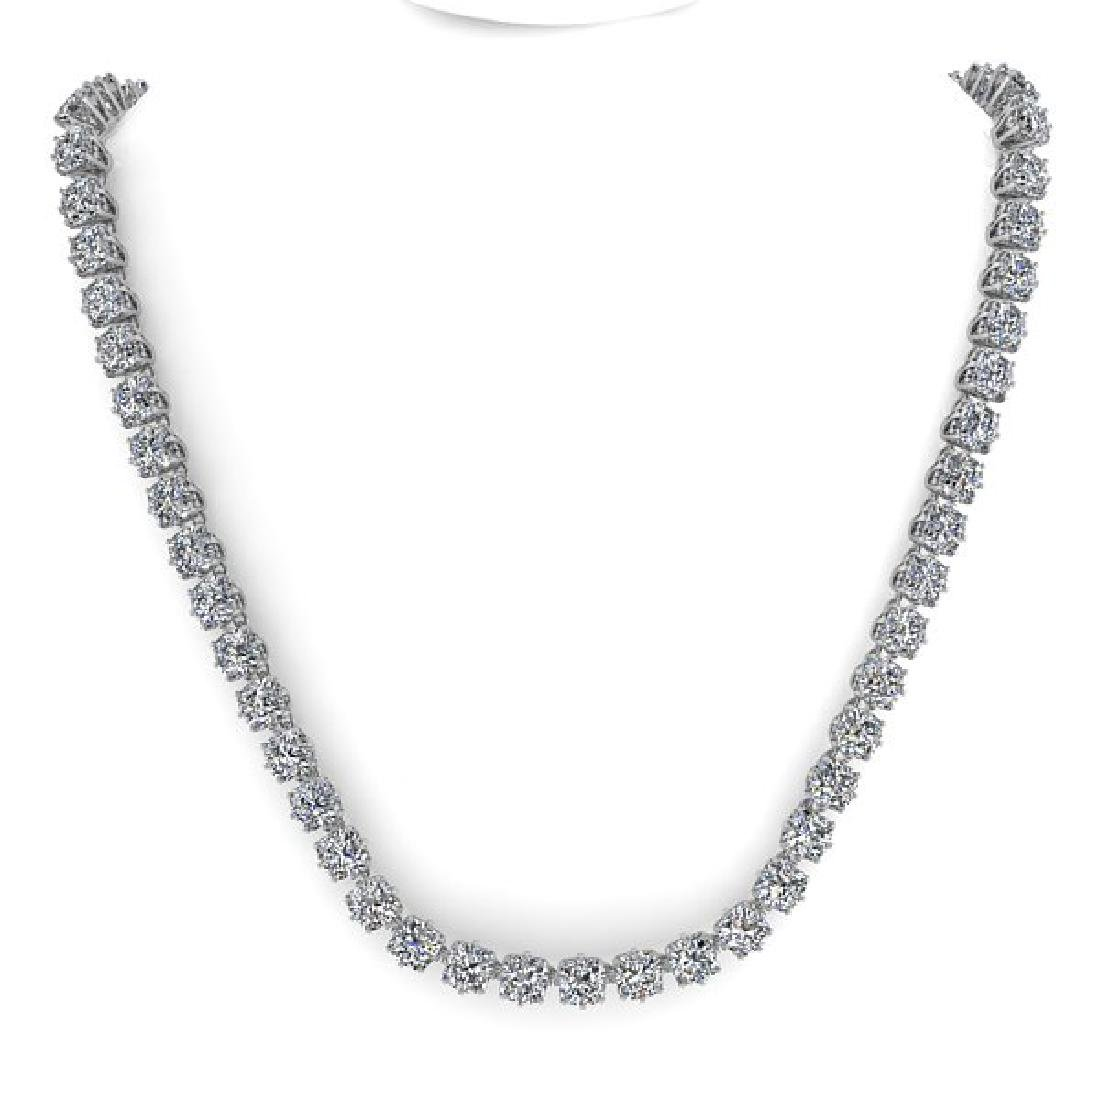 28 CTW Oval Cut SI Certified Diamond Necklace 18K White - 3